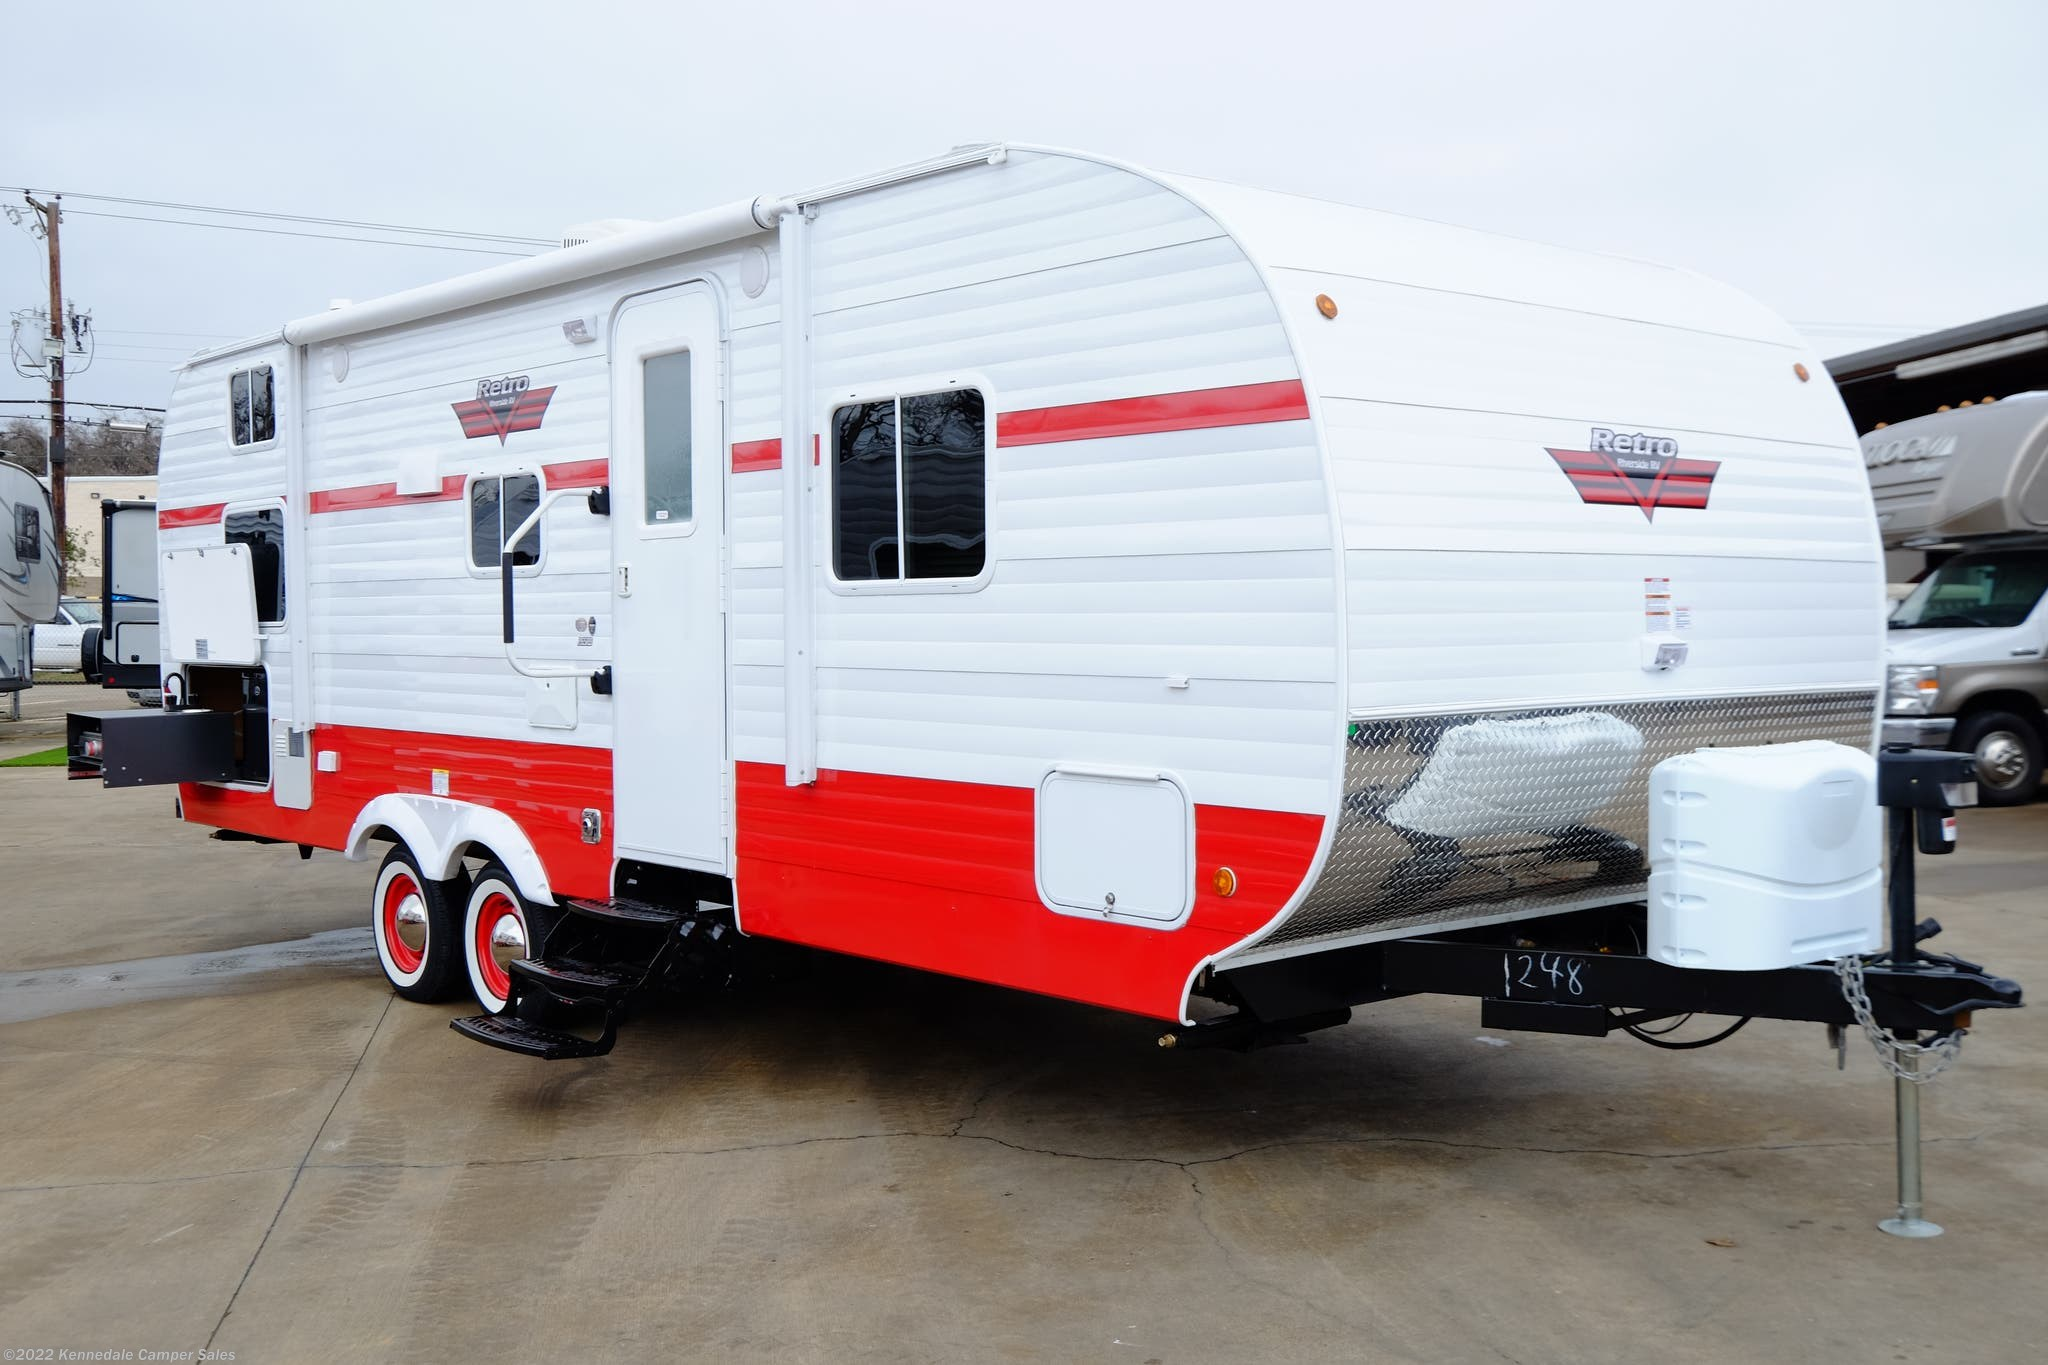 2019 Riverside RV RV Retro 265RB DISCOUNT 34% for Sale in Kennedale, TX  76060 | 001248